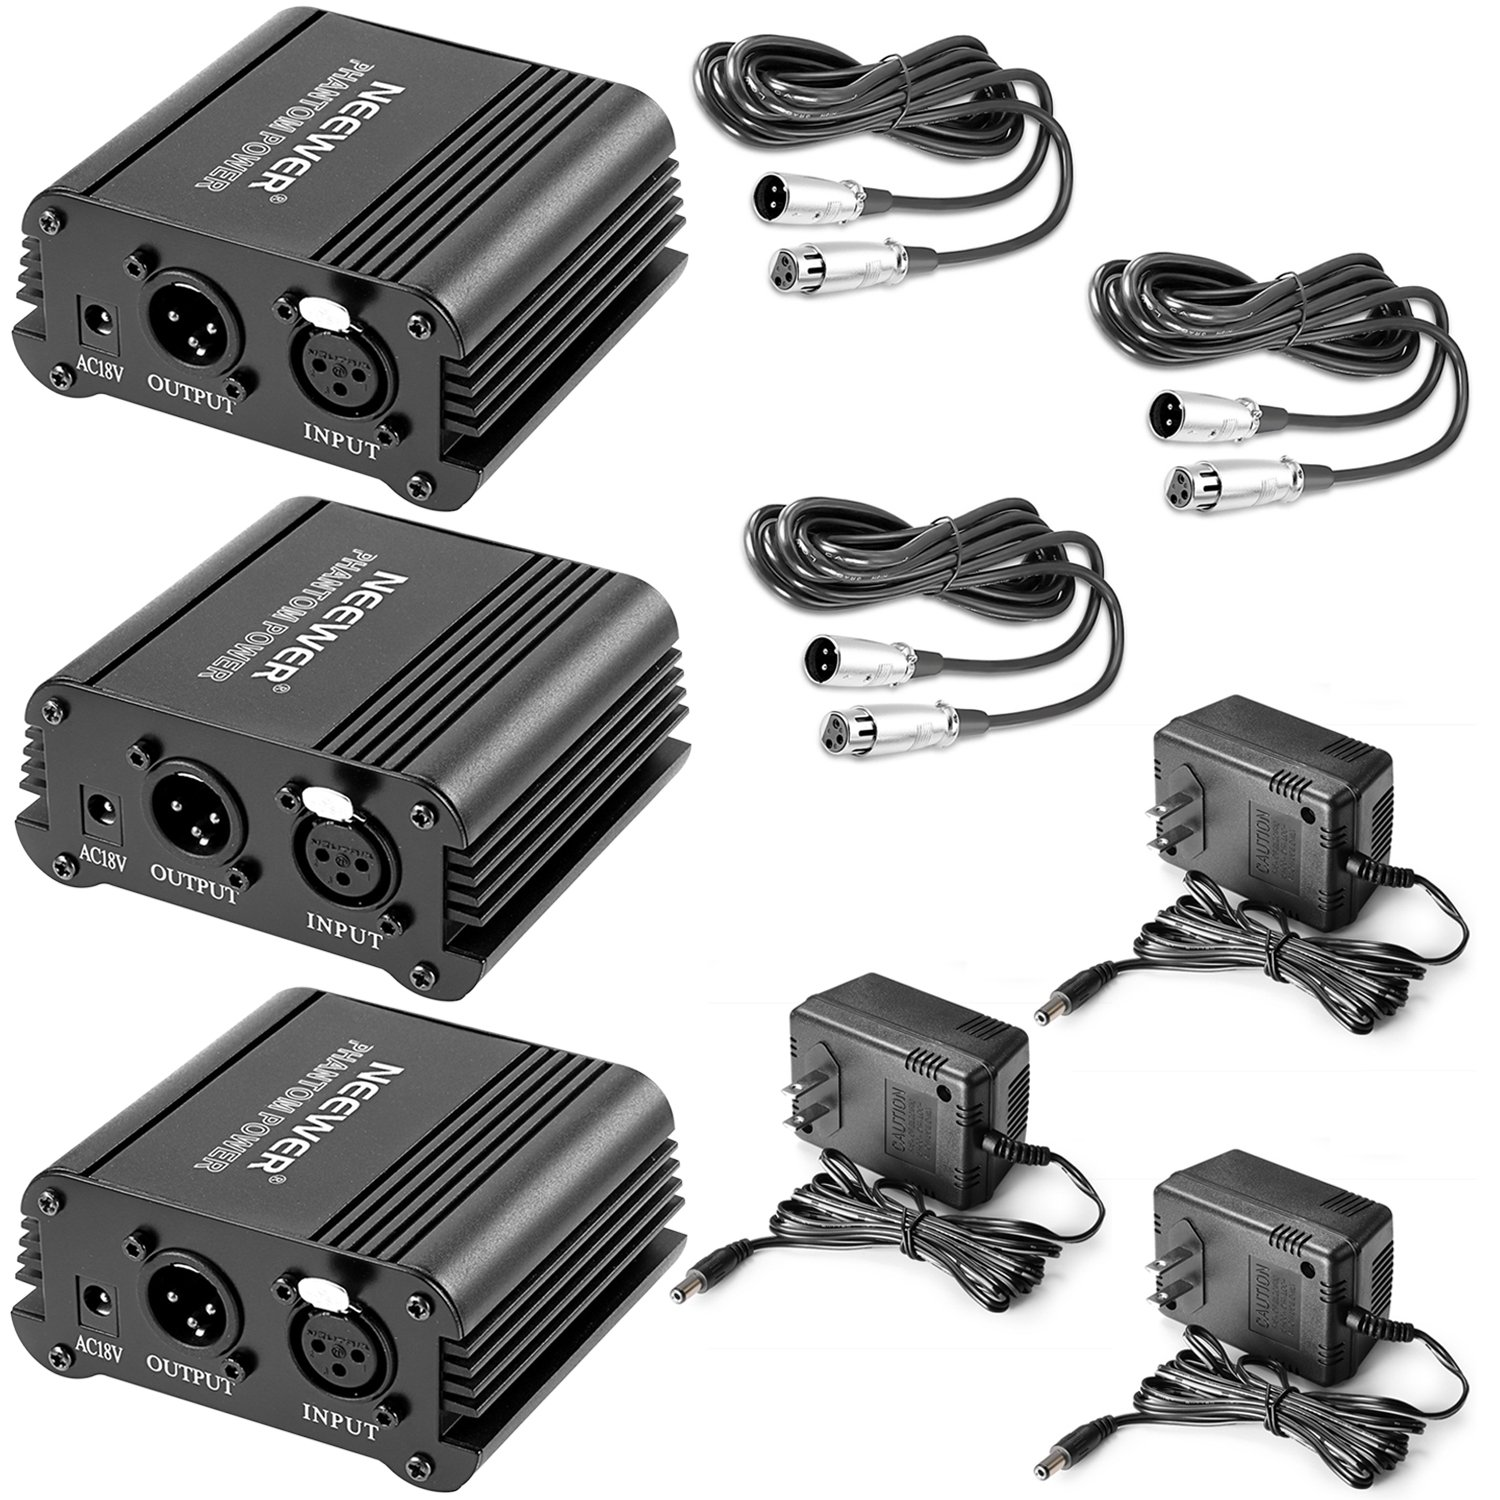 Neewer 3 Pack 1- Channel 48V Phantom Power Supply Black with Adapter and XLR Male to XLR Female Cable, 8 Feet, for Any Condenser Microphone Music Recording Equipment, Ideal for Stage and Studio Use 90089927@@##1